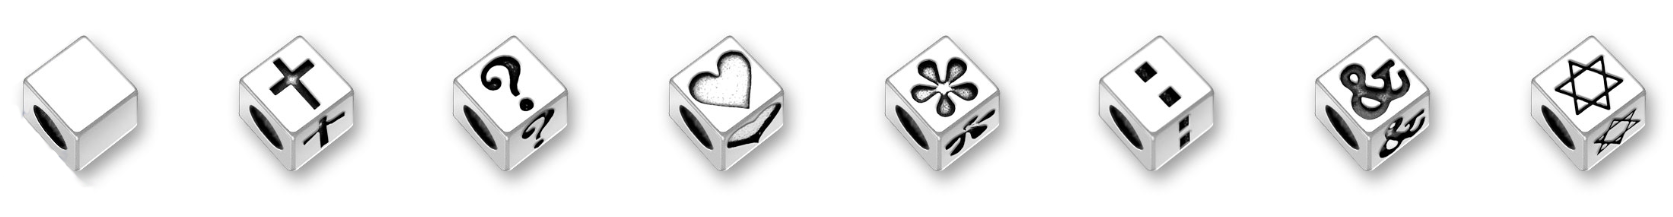 Cubes - Spacers, Cross, Questions Mark, Heart, Flower, Colon, Ampersand, Star of David - Sterling Silver